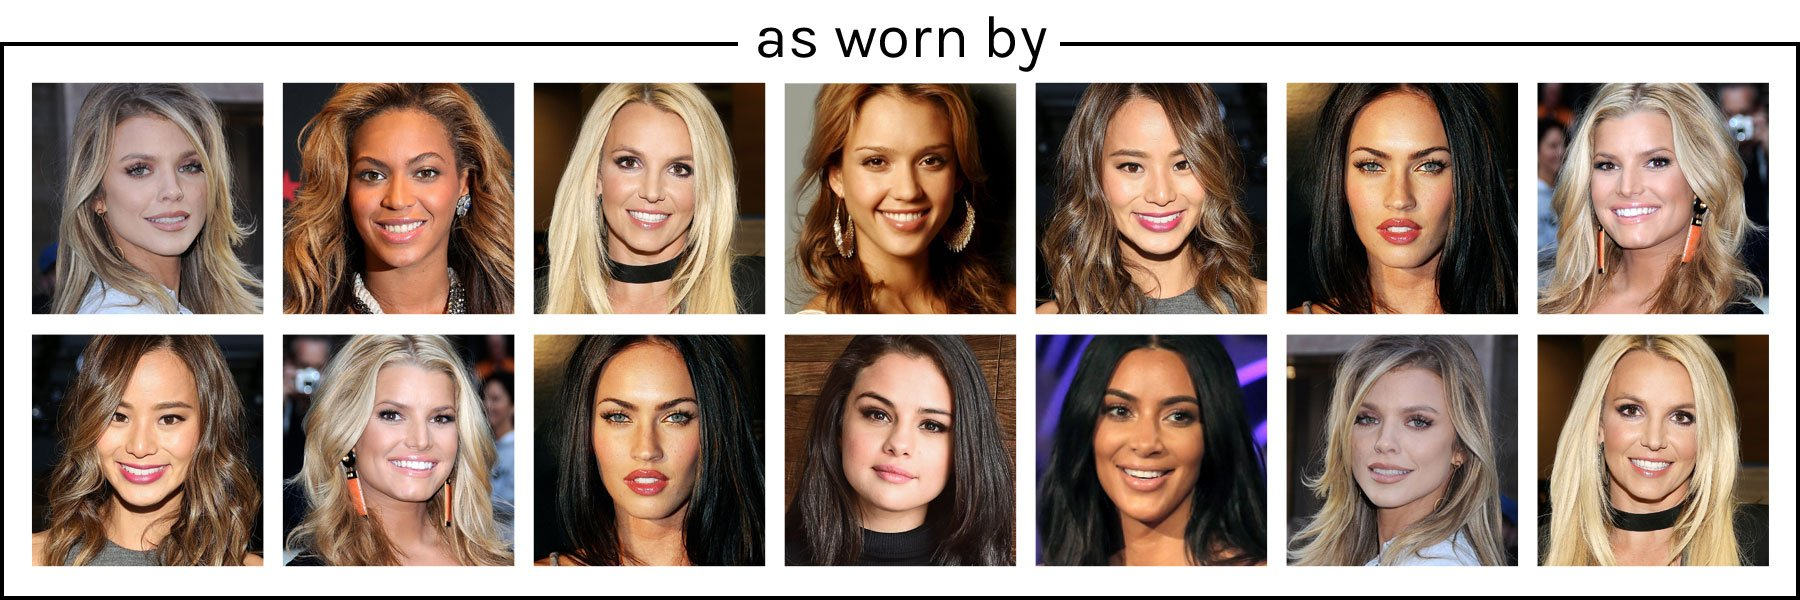 As worn by celebrities